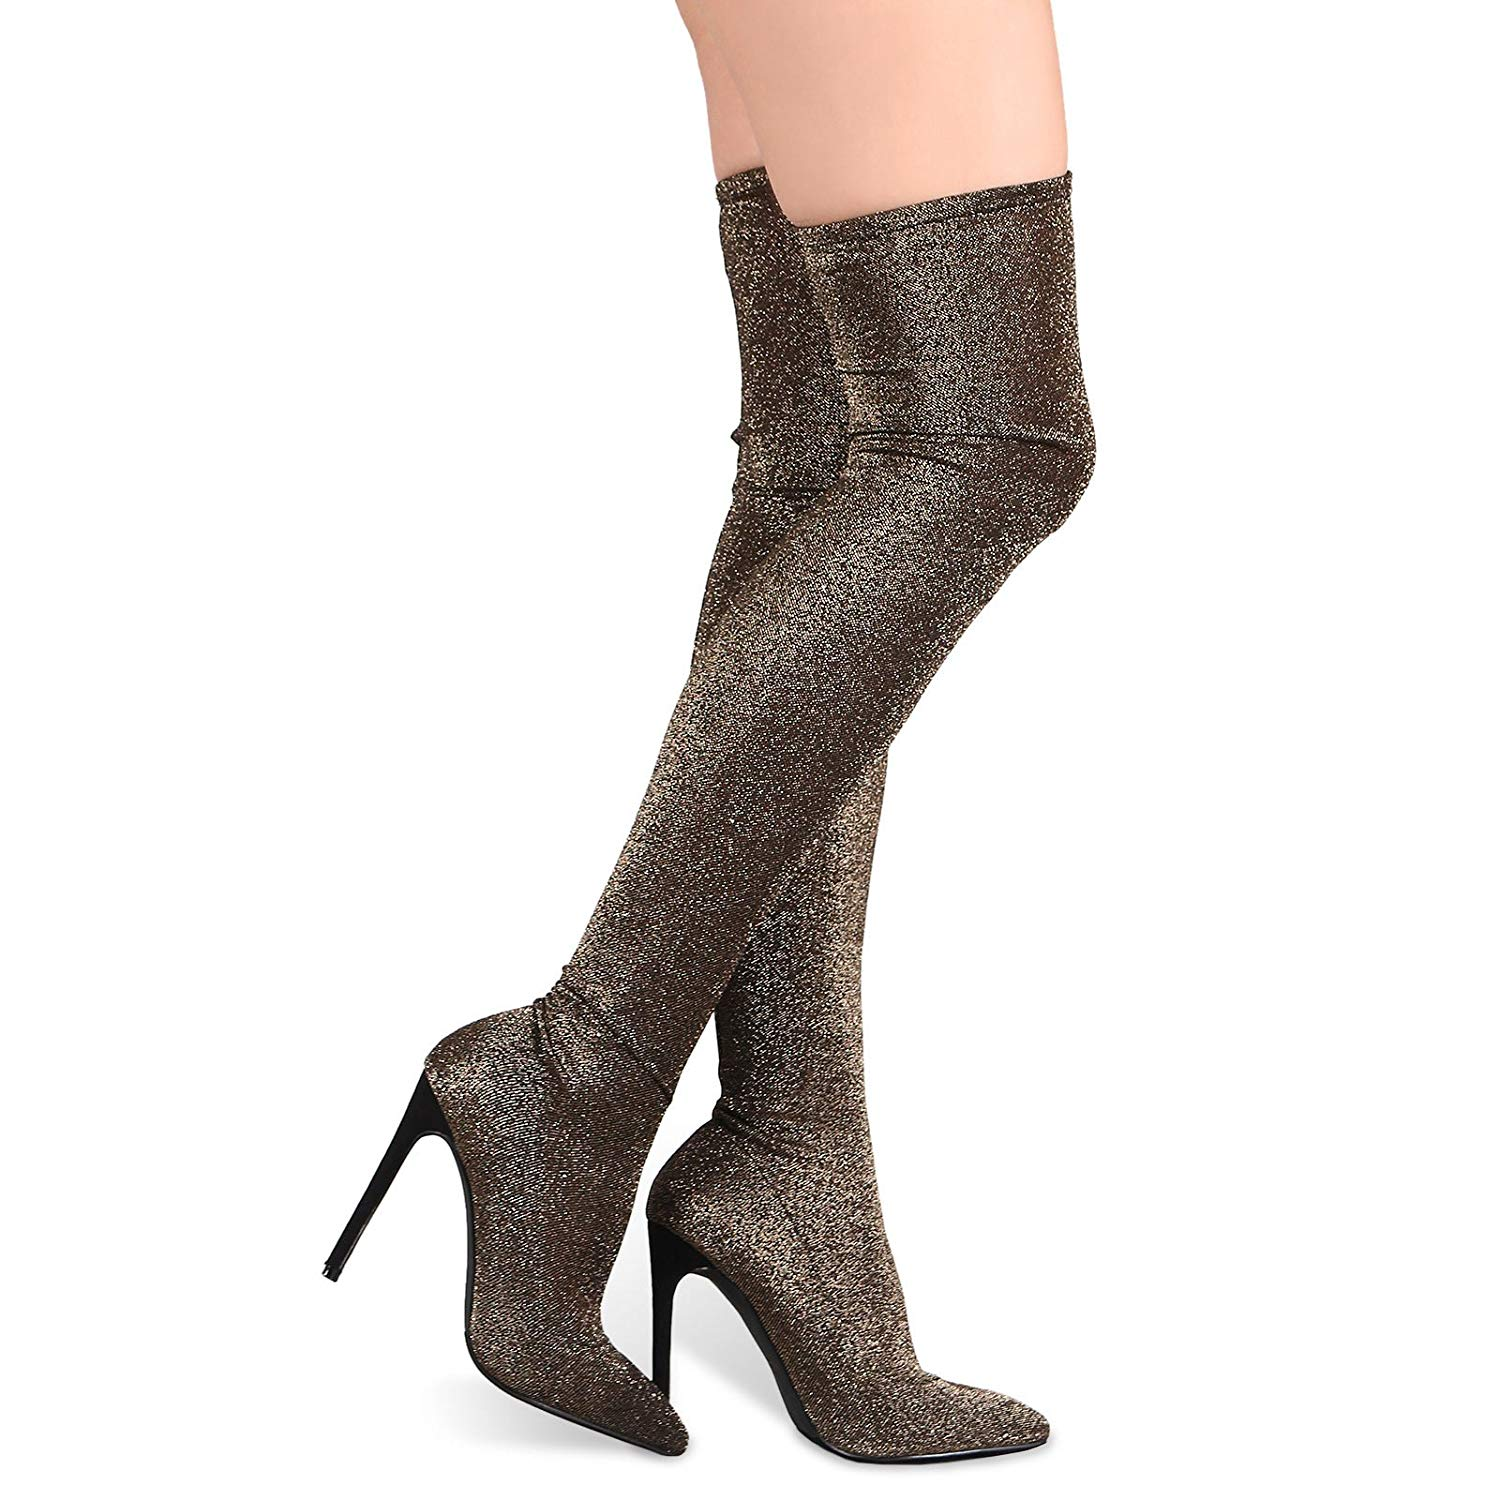 267fc7880d0 Get Quotations · Liliana Thigh High Boots w Stretchy Glitter Knit Pointy  Toe Stiletto Bootie Xaya11